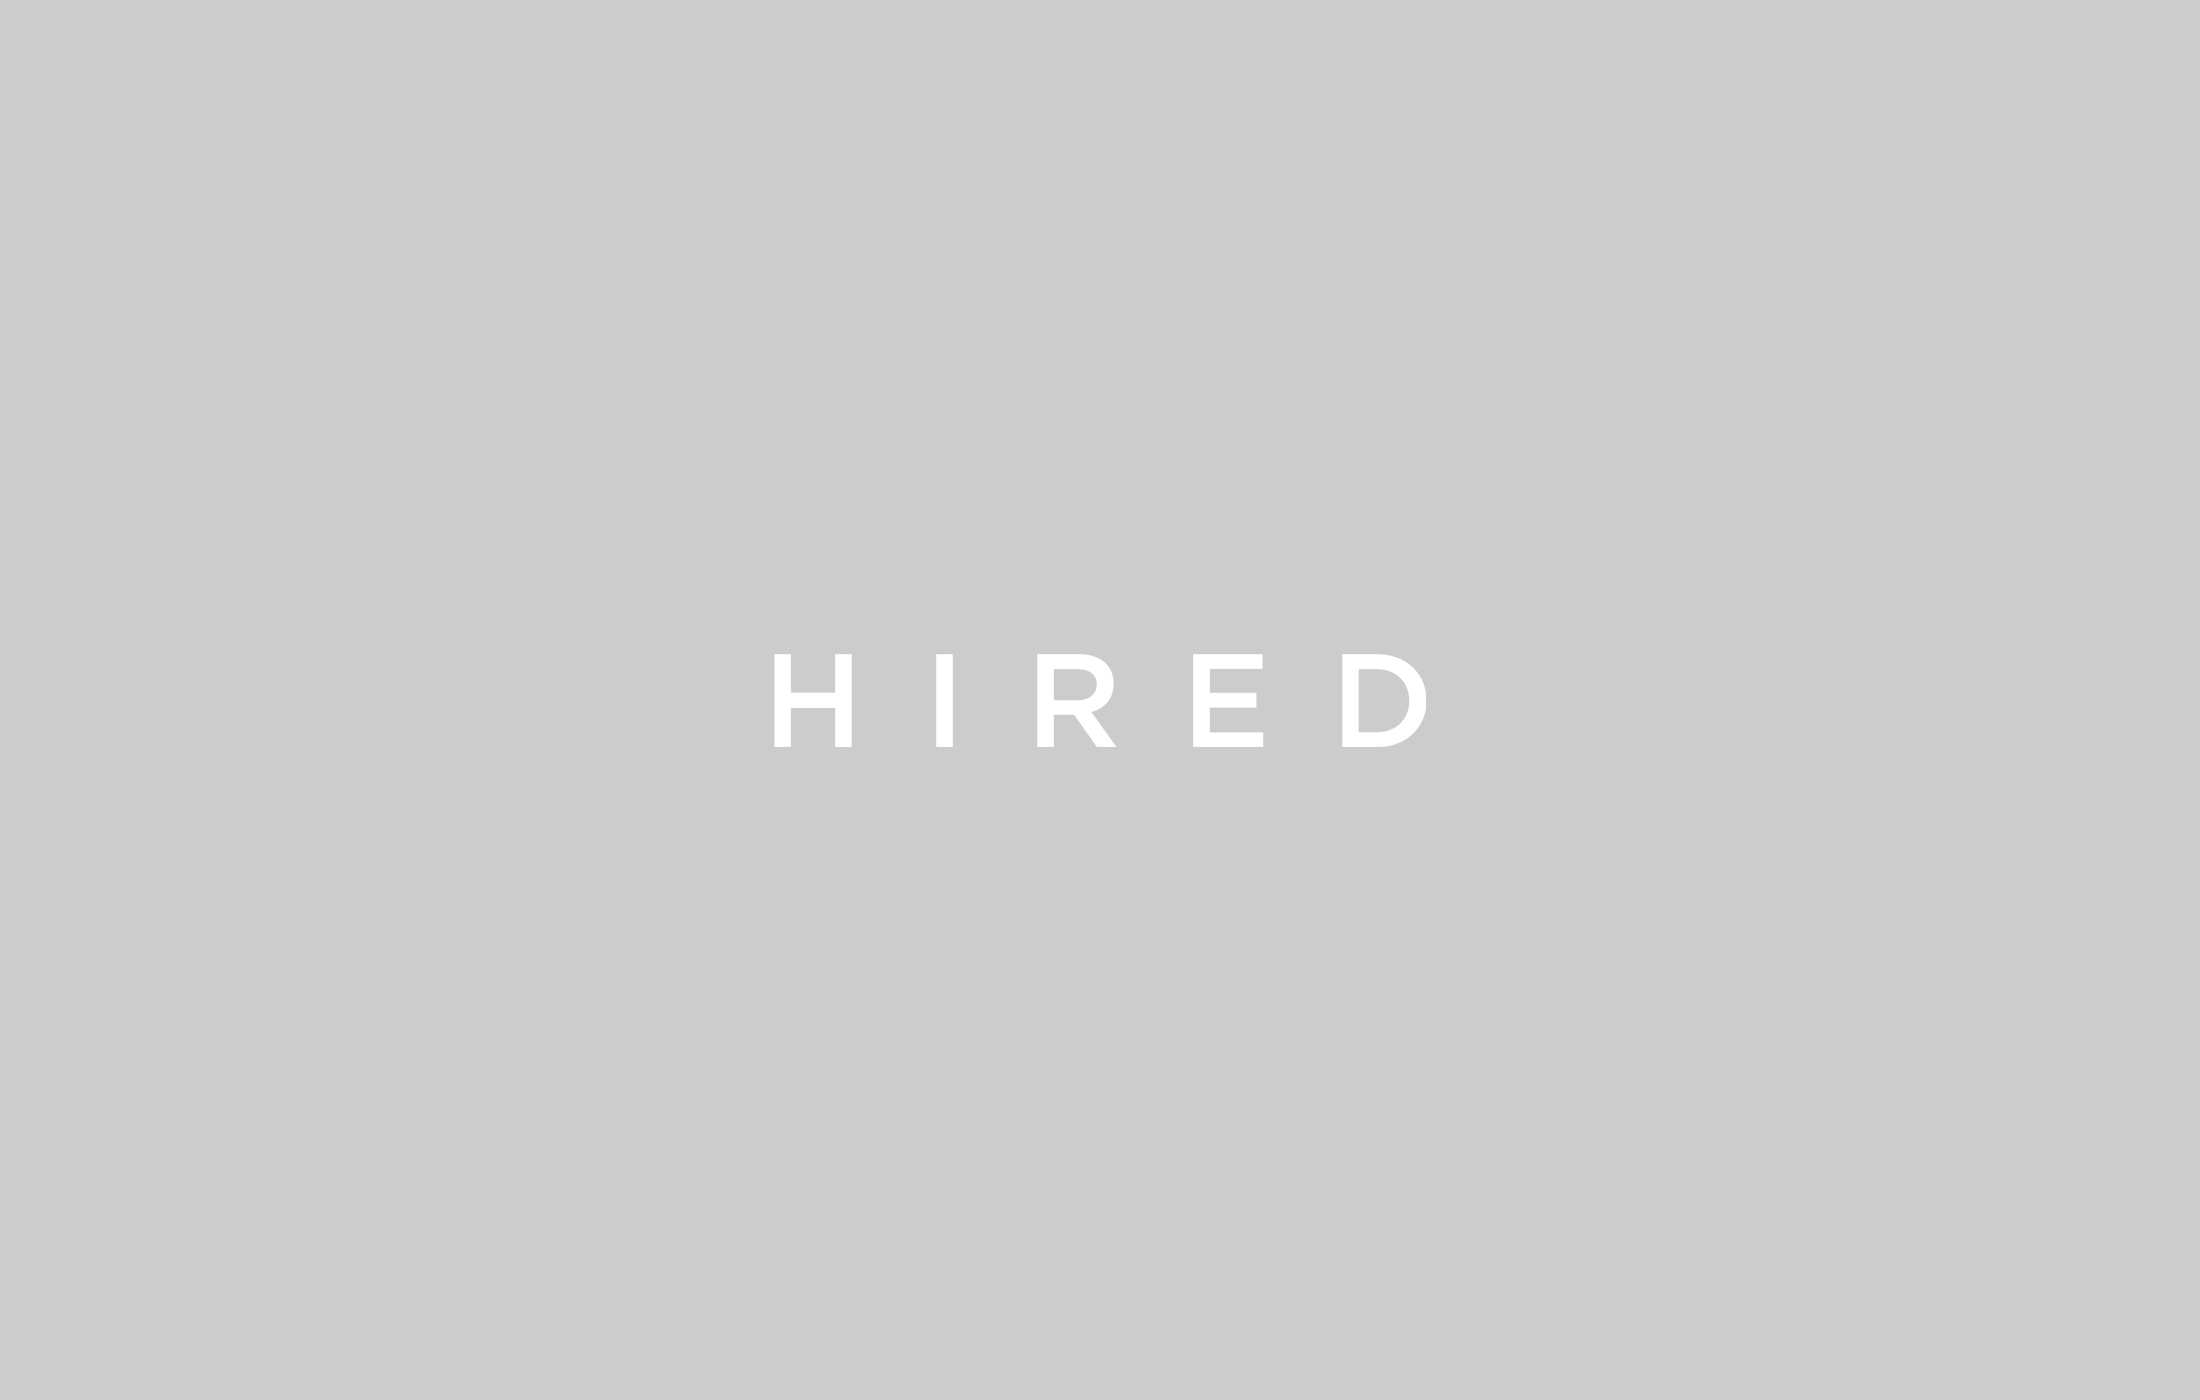 hired-opens-nyc-office-5k-promotion-to-spur-market